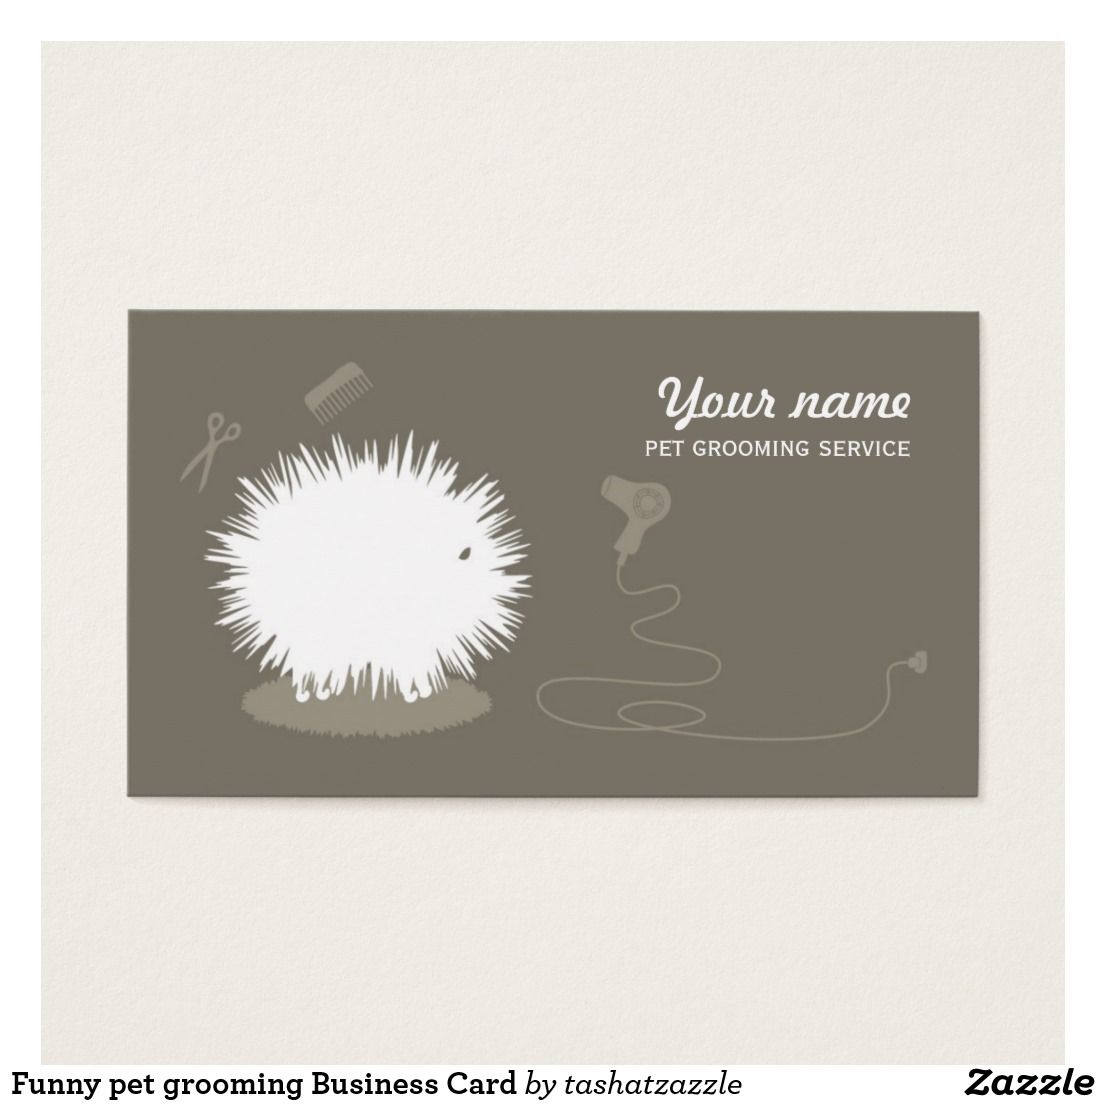 Funny pet grooming Business Card | Pet grooming and Funny pets